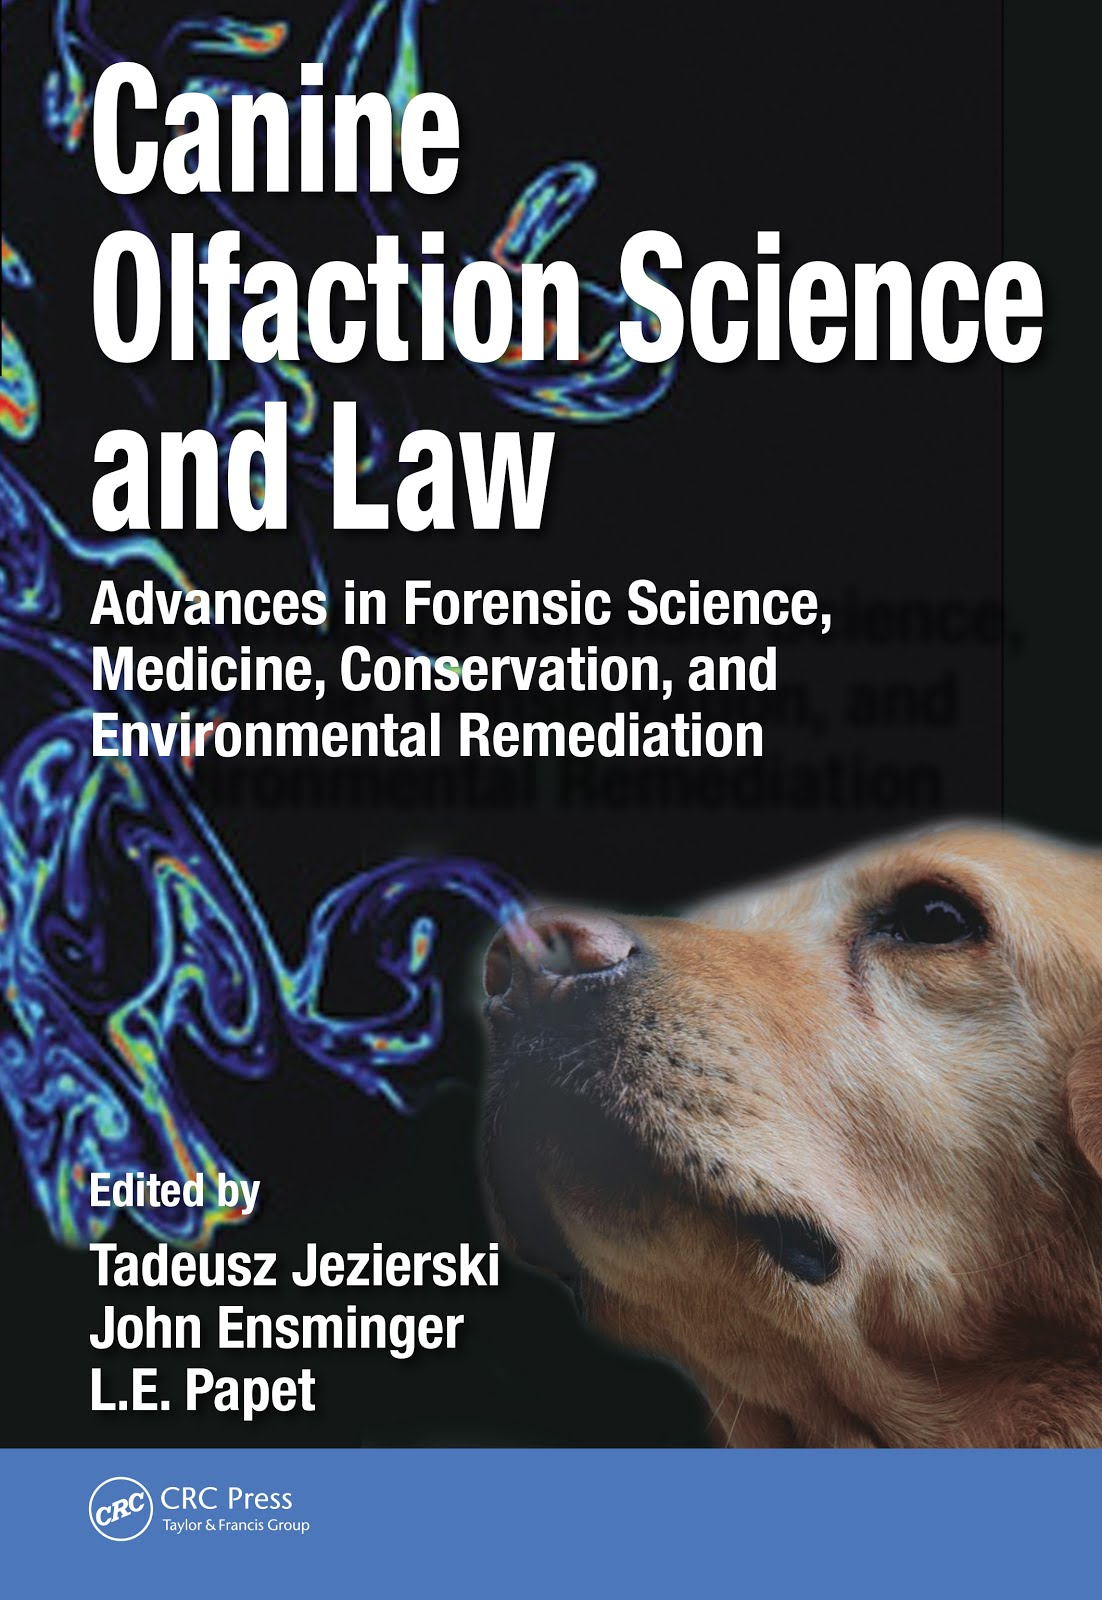 New Book on Canine Olfaction